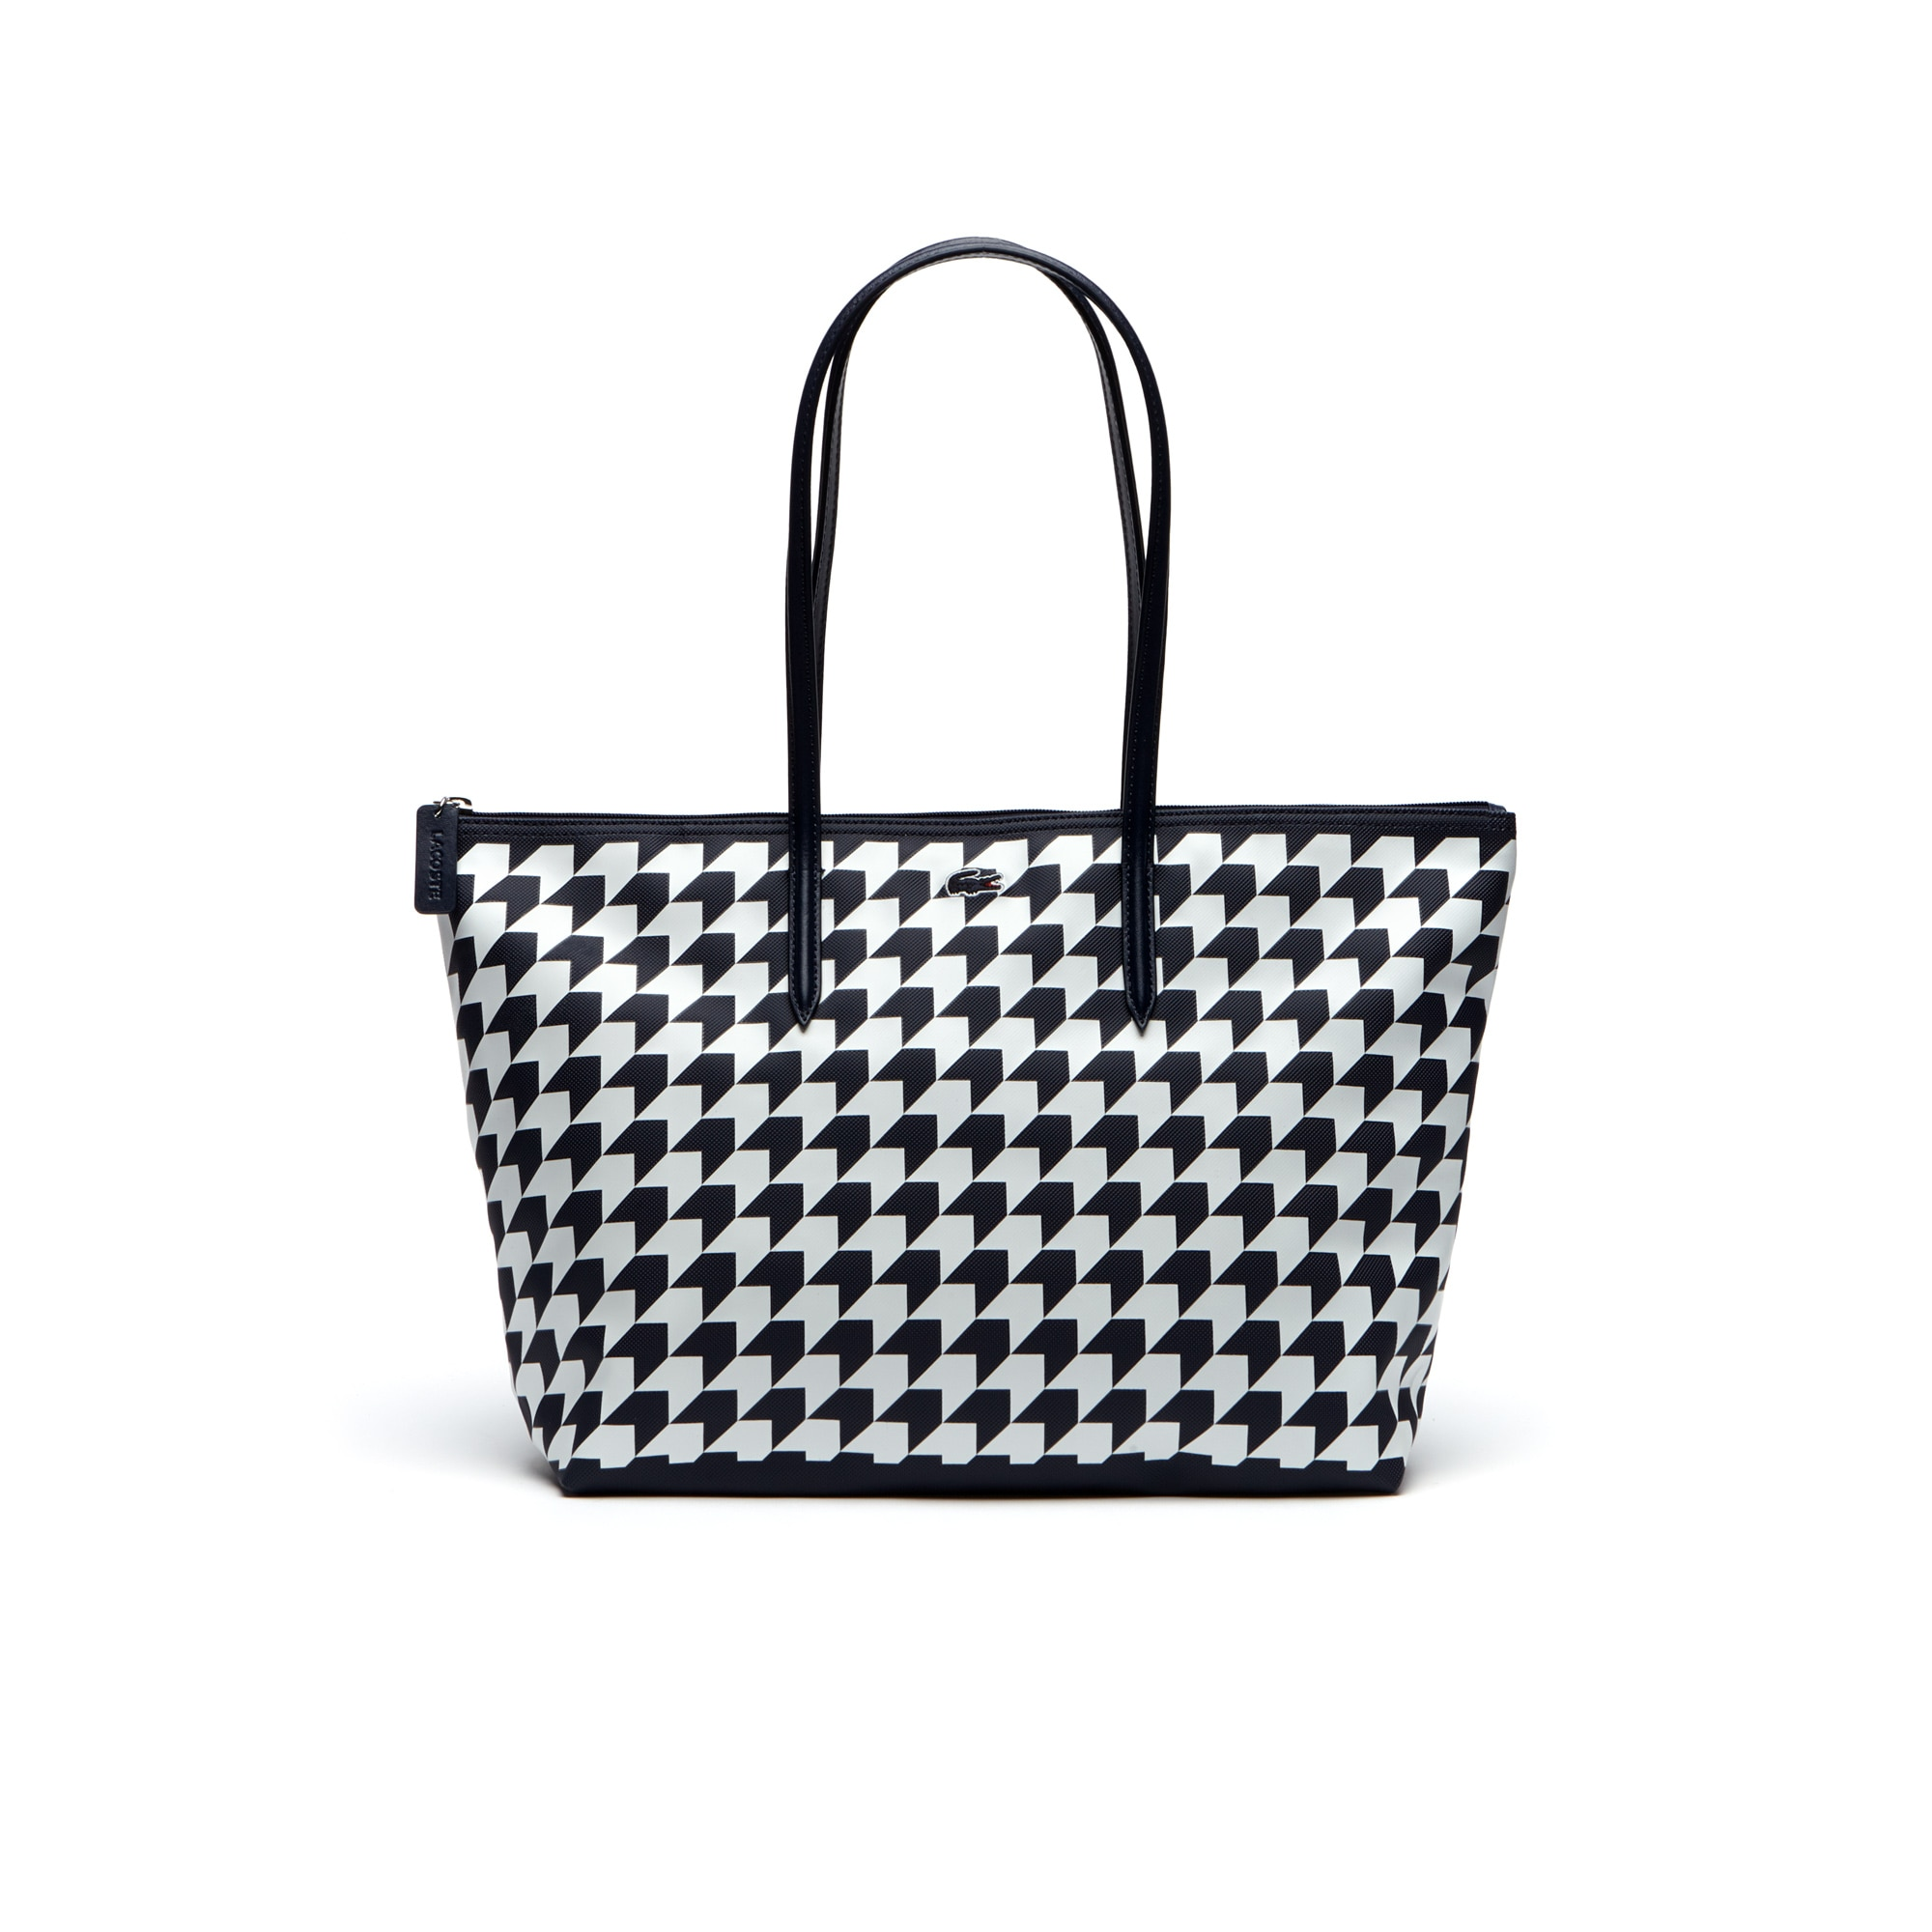 Women's L.12.12 Concept Houndstooth Horizontal Zip Tote Bag